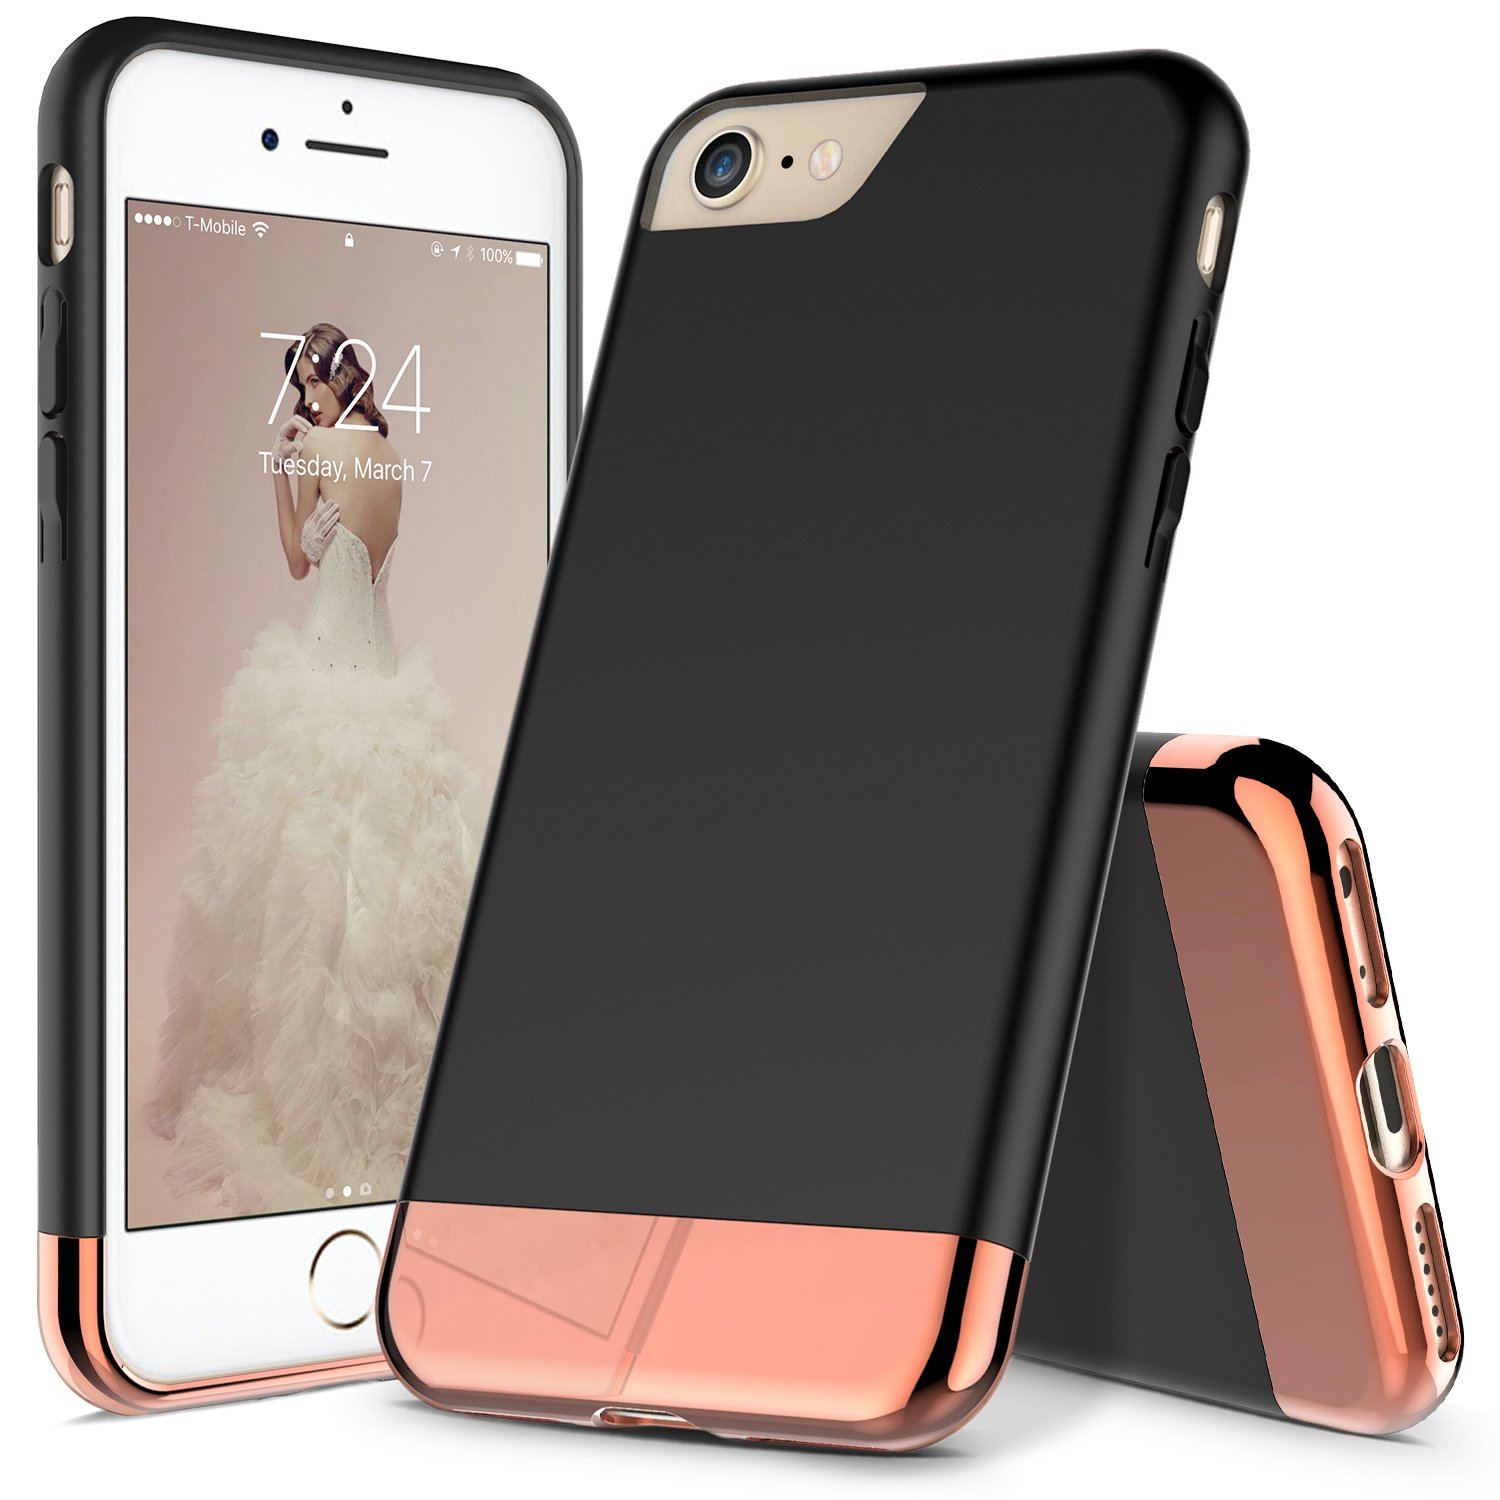 new product 6fac8 ca3ba iPhone 7 Case, iPhone 8 Case, RANZ Black with Rose Gold Protective Slider  Style Scratch Proof Hard Cover for Apple iPhone 7 / iPhone 8